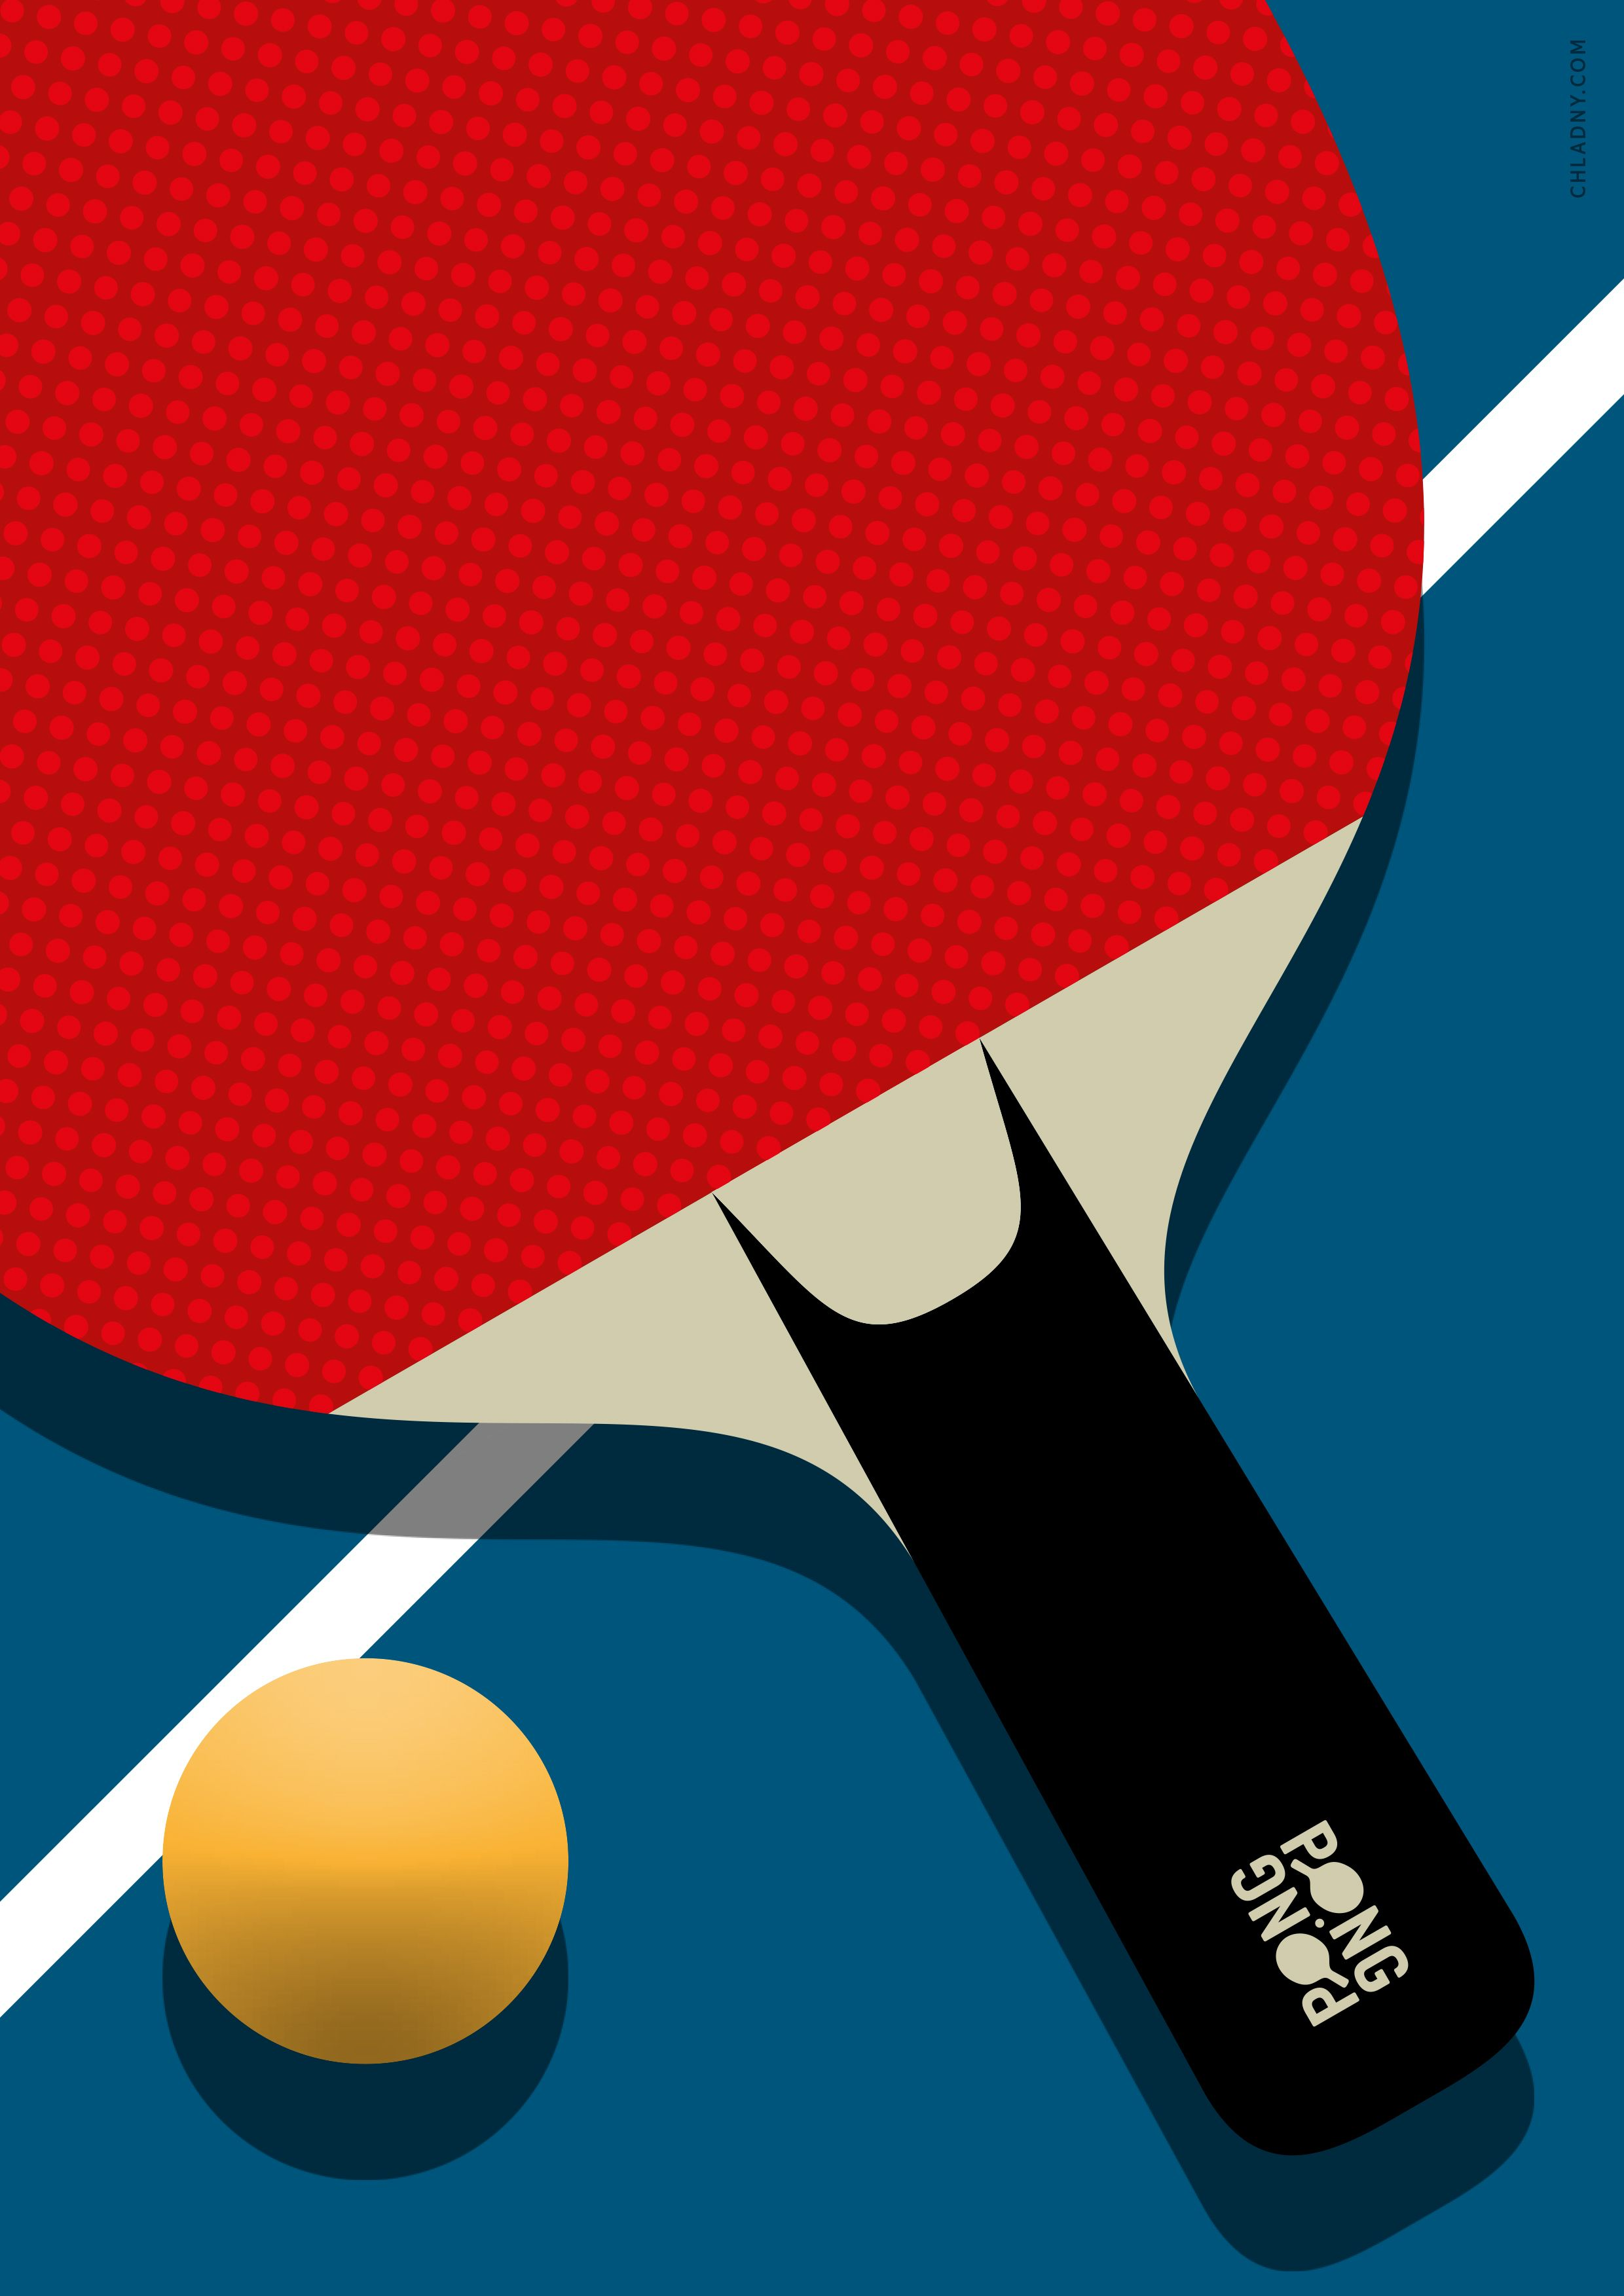 West Seattle Supper Club Presents Go Ping Pong Sport Poster Design Sports Illustrations Design Tennis Posters